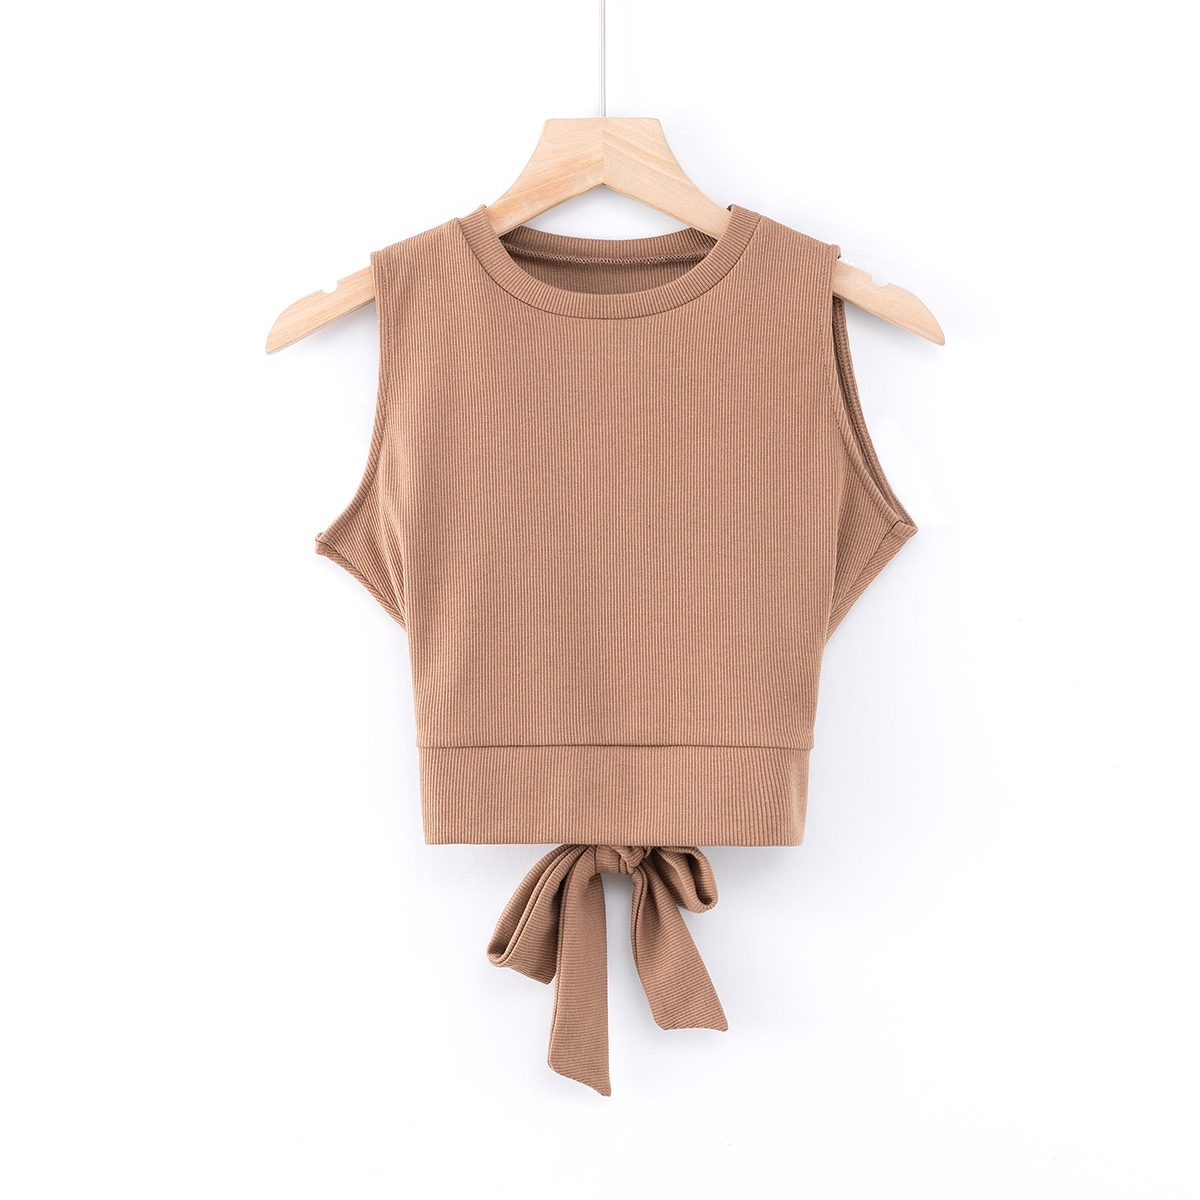 2020 Summer Sleeveless Knitted Tops Solid Color Sports Tops Back Cross Bandage T shirts Tees